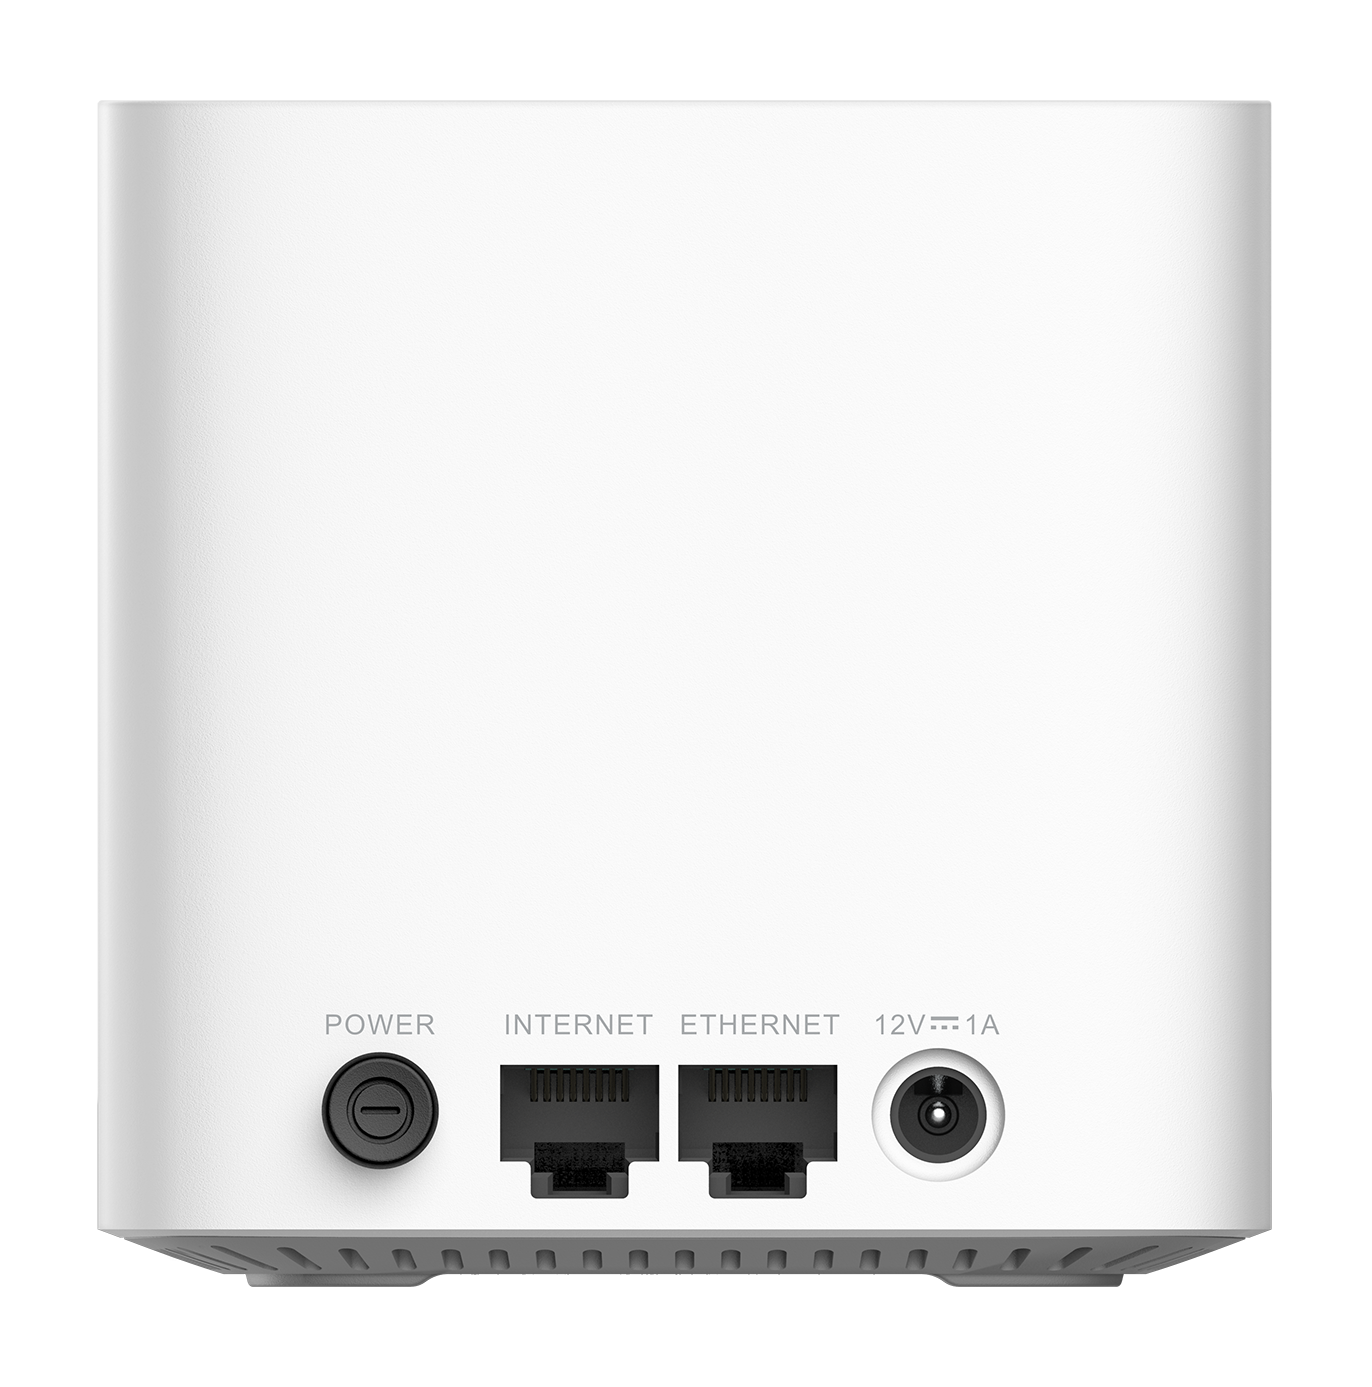 COVR-1100 AC1200 Dual Band Whole Home Mesh Wi-Fi System - back